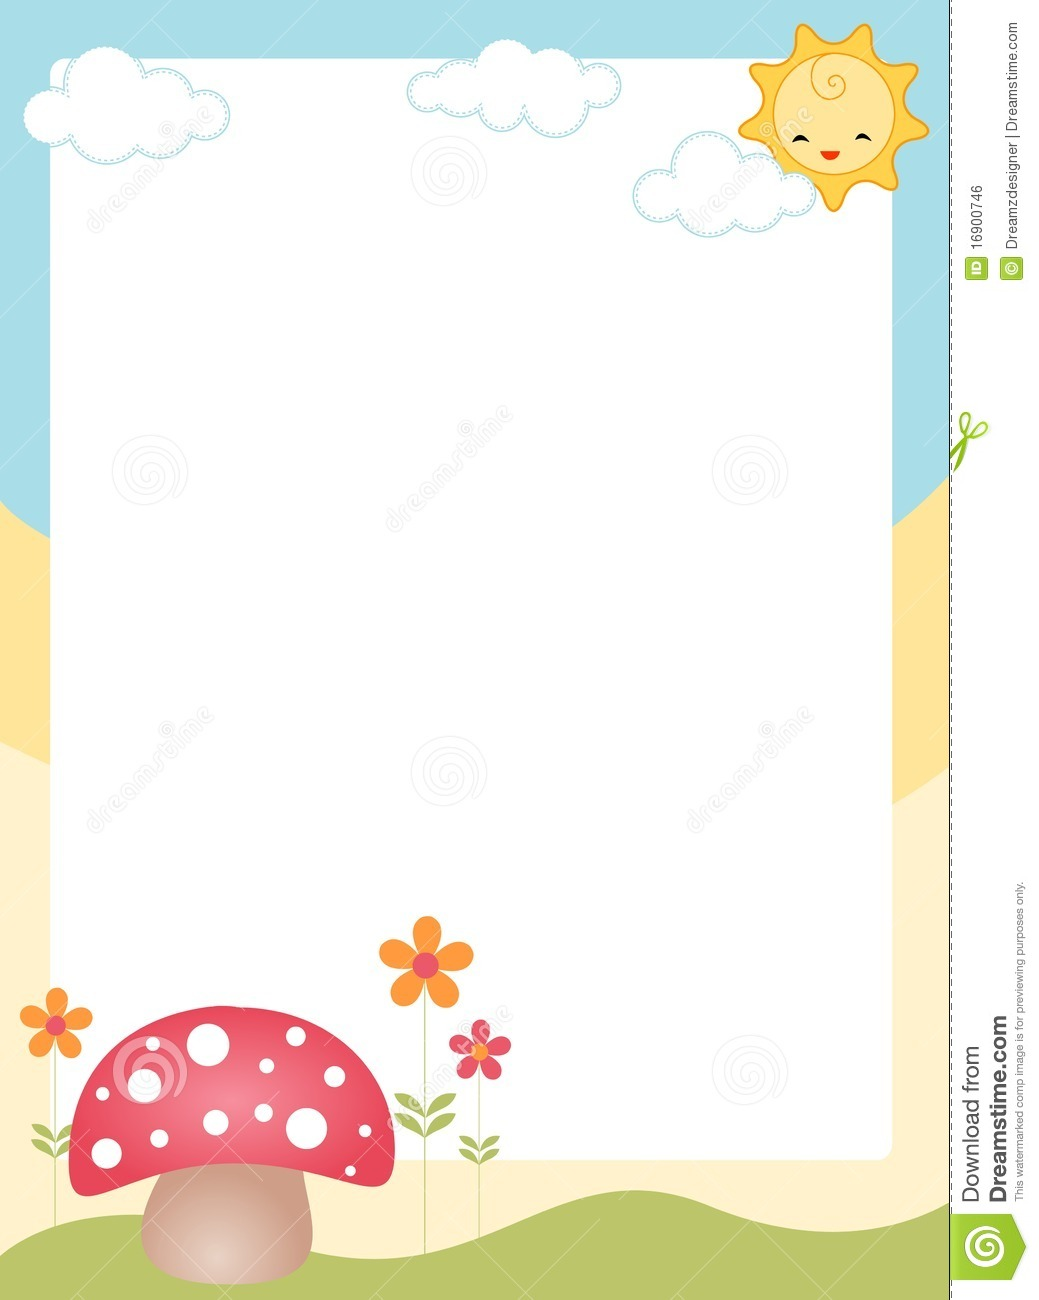 and cute mushroom spring/ summer page border. By Dreamzdesigner